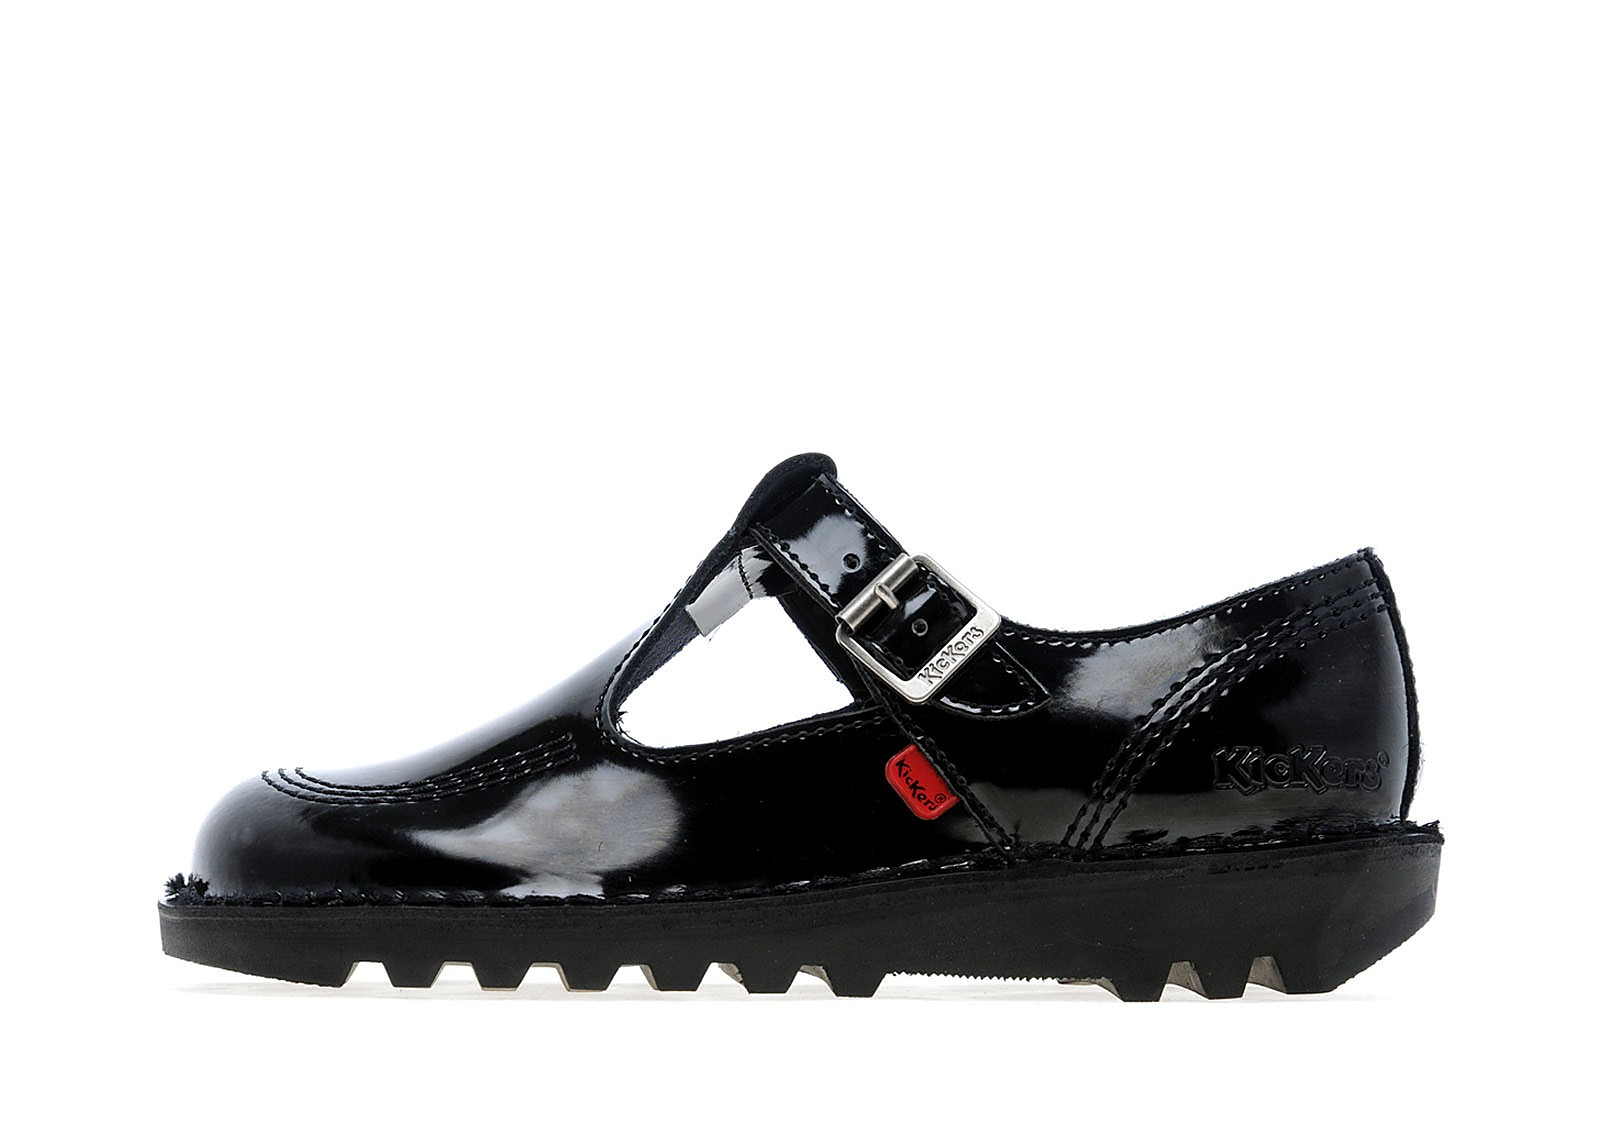 Lastest Kickers Shoes  Kickers Kick Low Core Black Shoes Sale  Kickers Women